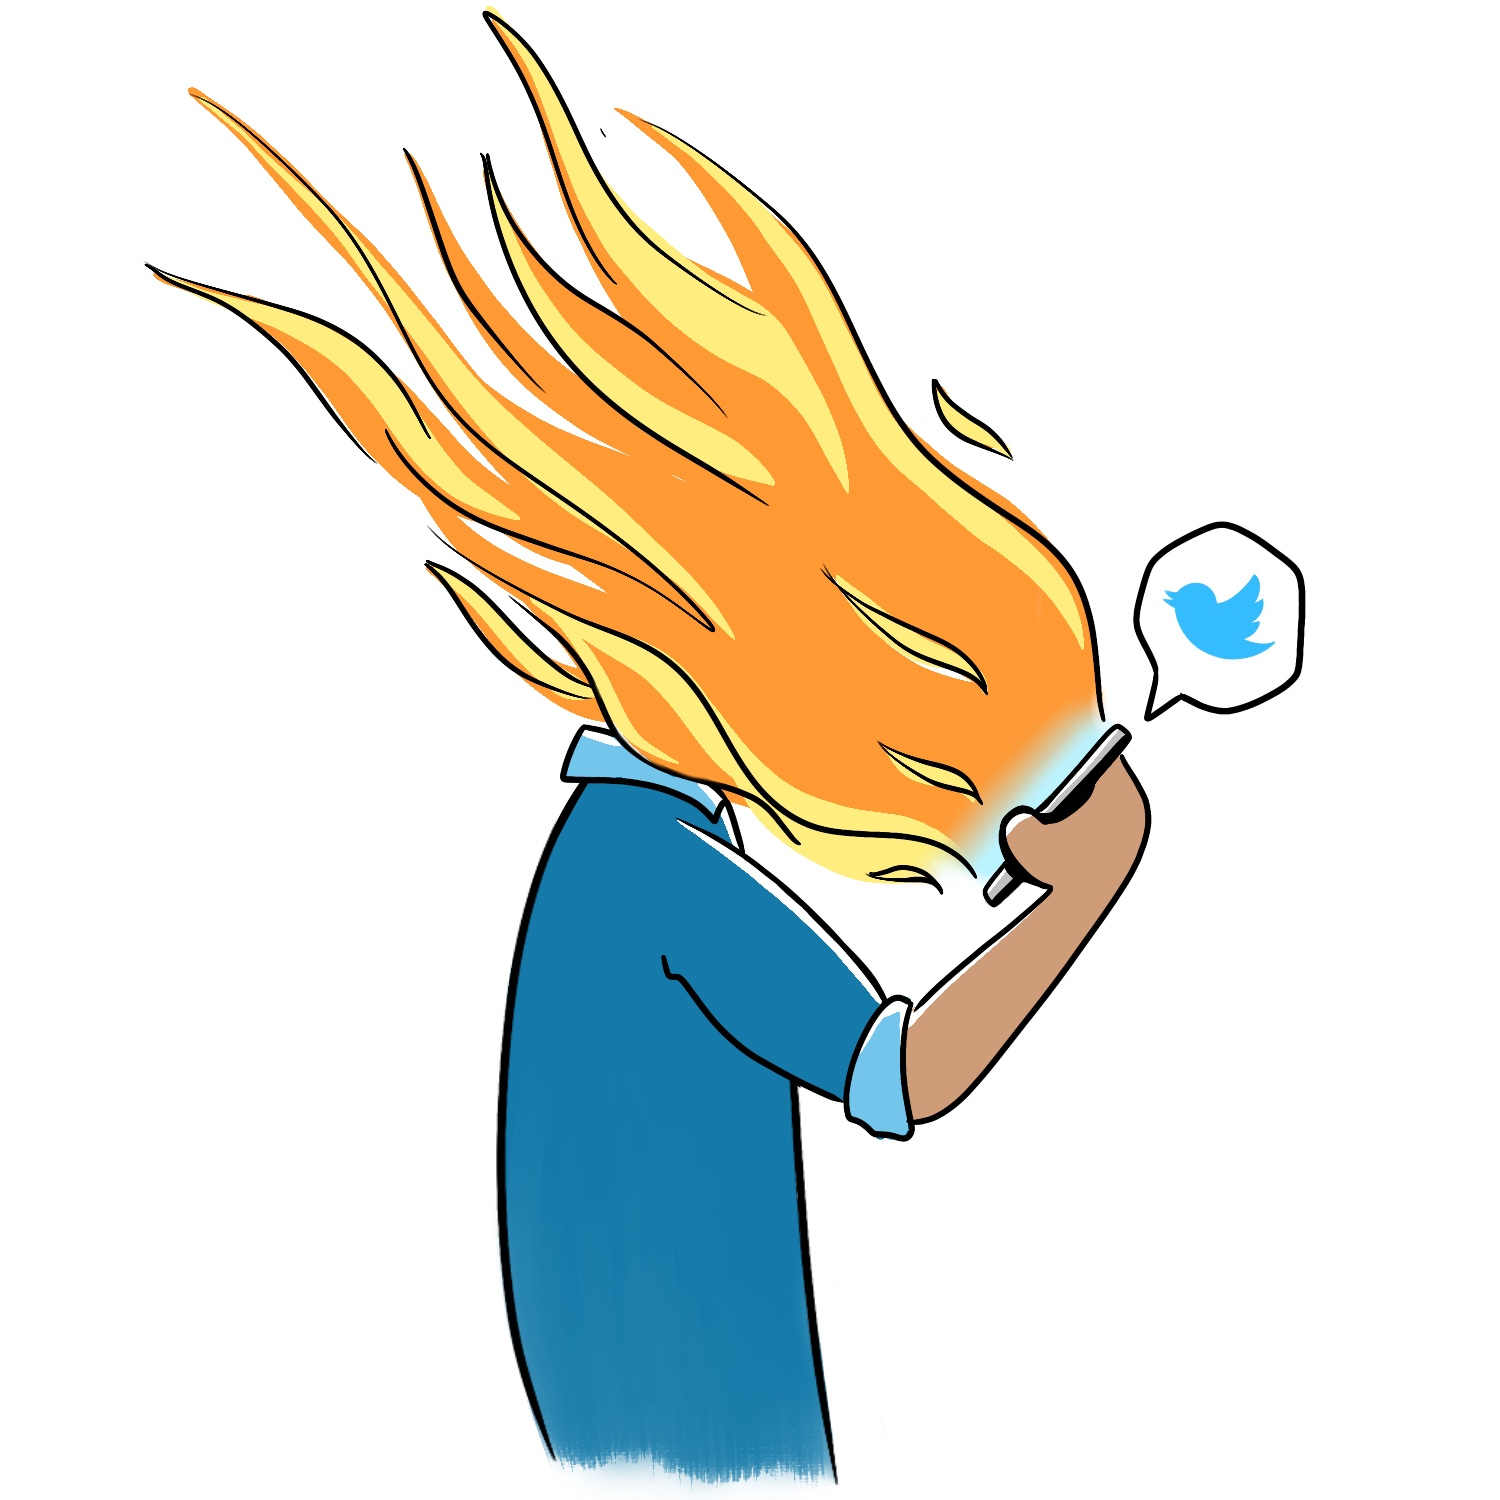 Illustration of someone in a blue shirt staring down at their phone as flames and Twitter birds jet out from the screen.